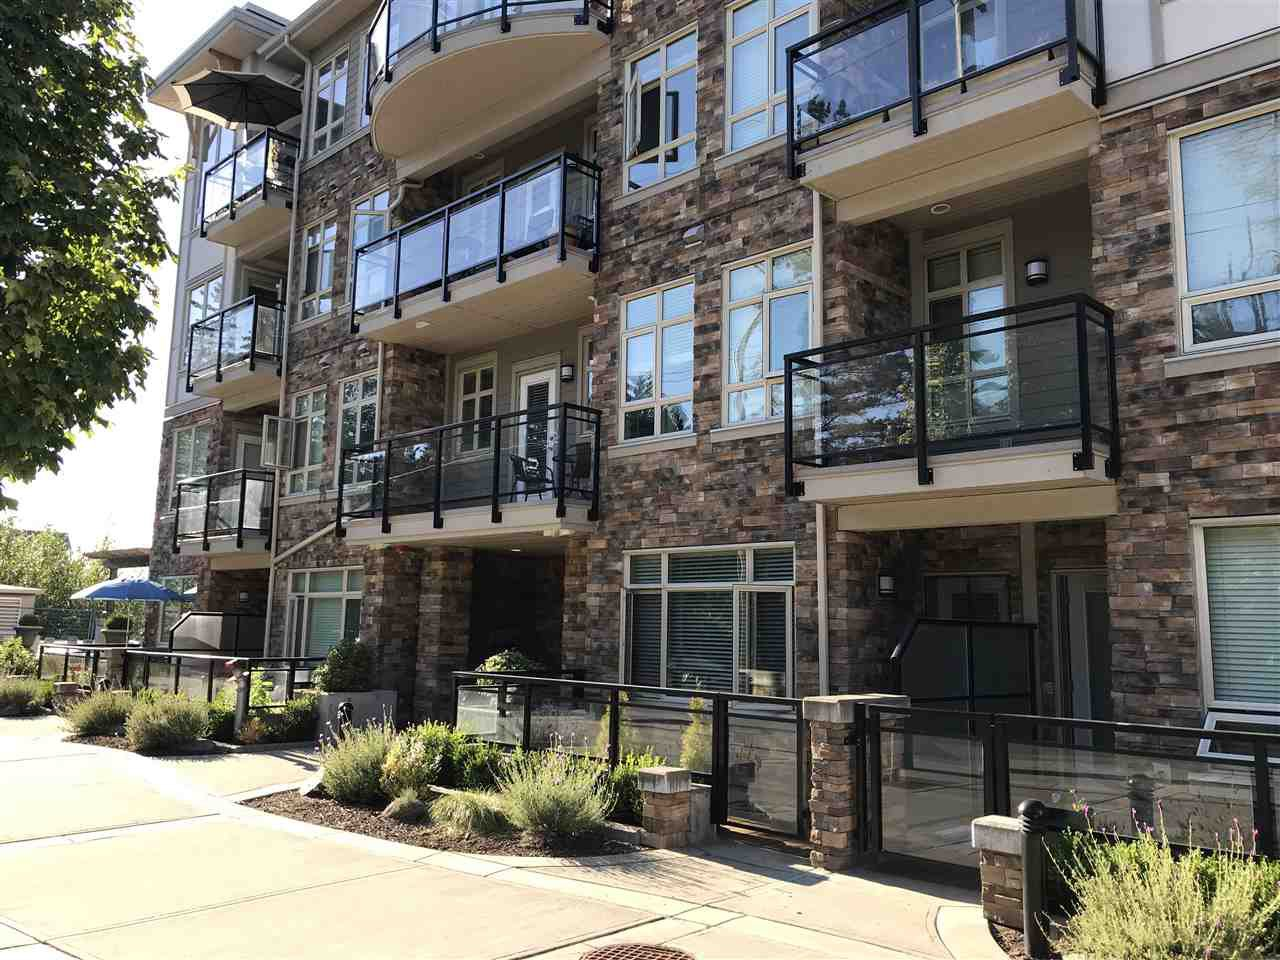 """Photo 15: Photos: 205 20861 83 Avenue in Langley: Willoughby Heights Condo for sale in """"Athenry Gate"""" : MLS®# R2290422"""